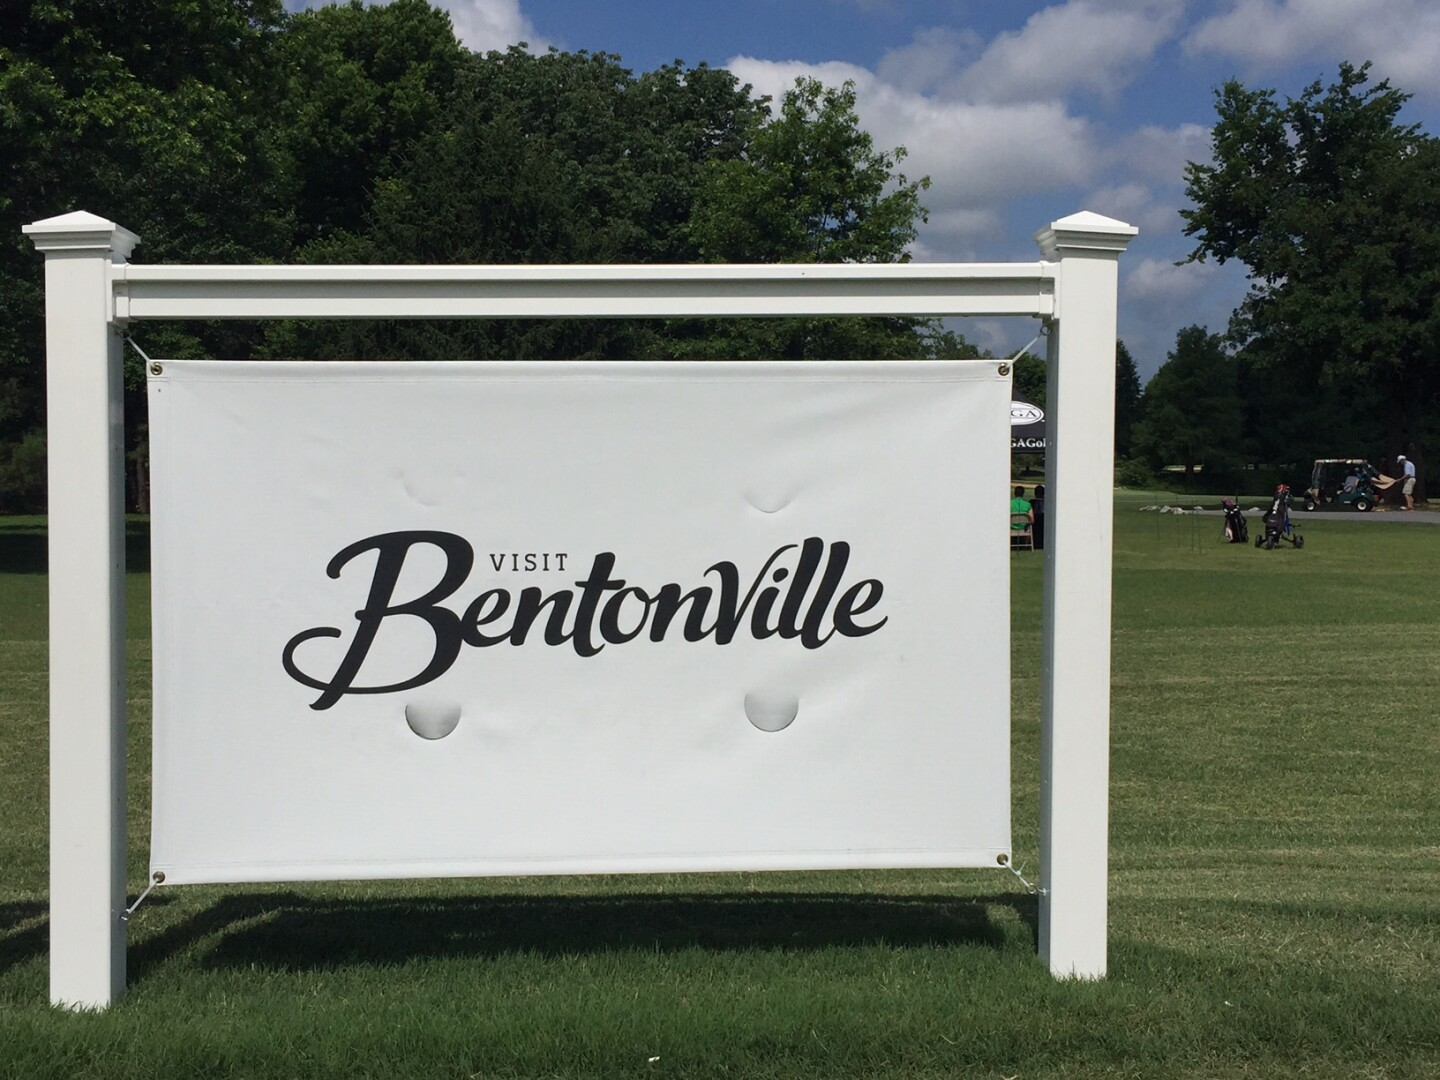 8878-visit-bentonville-talks-impact-of-the-ajga.JPG